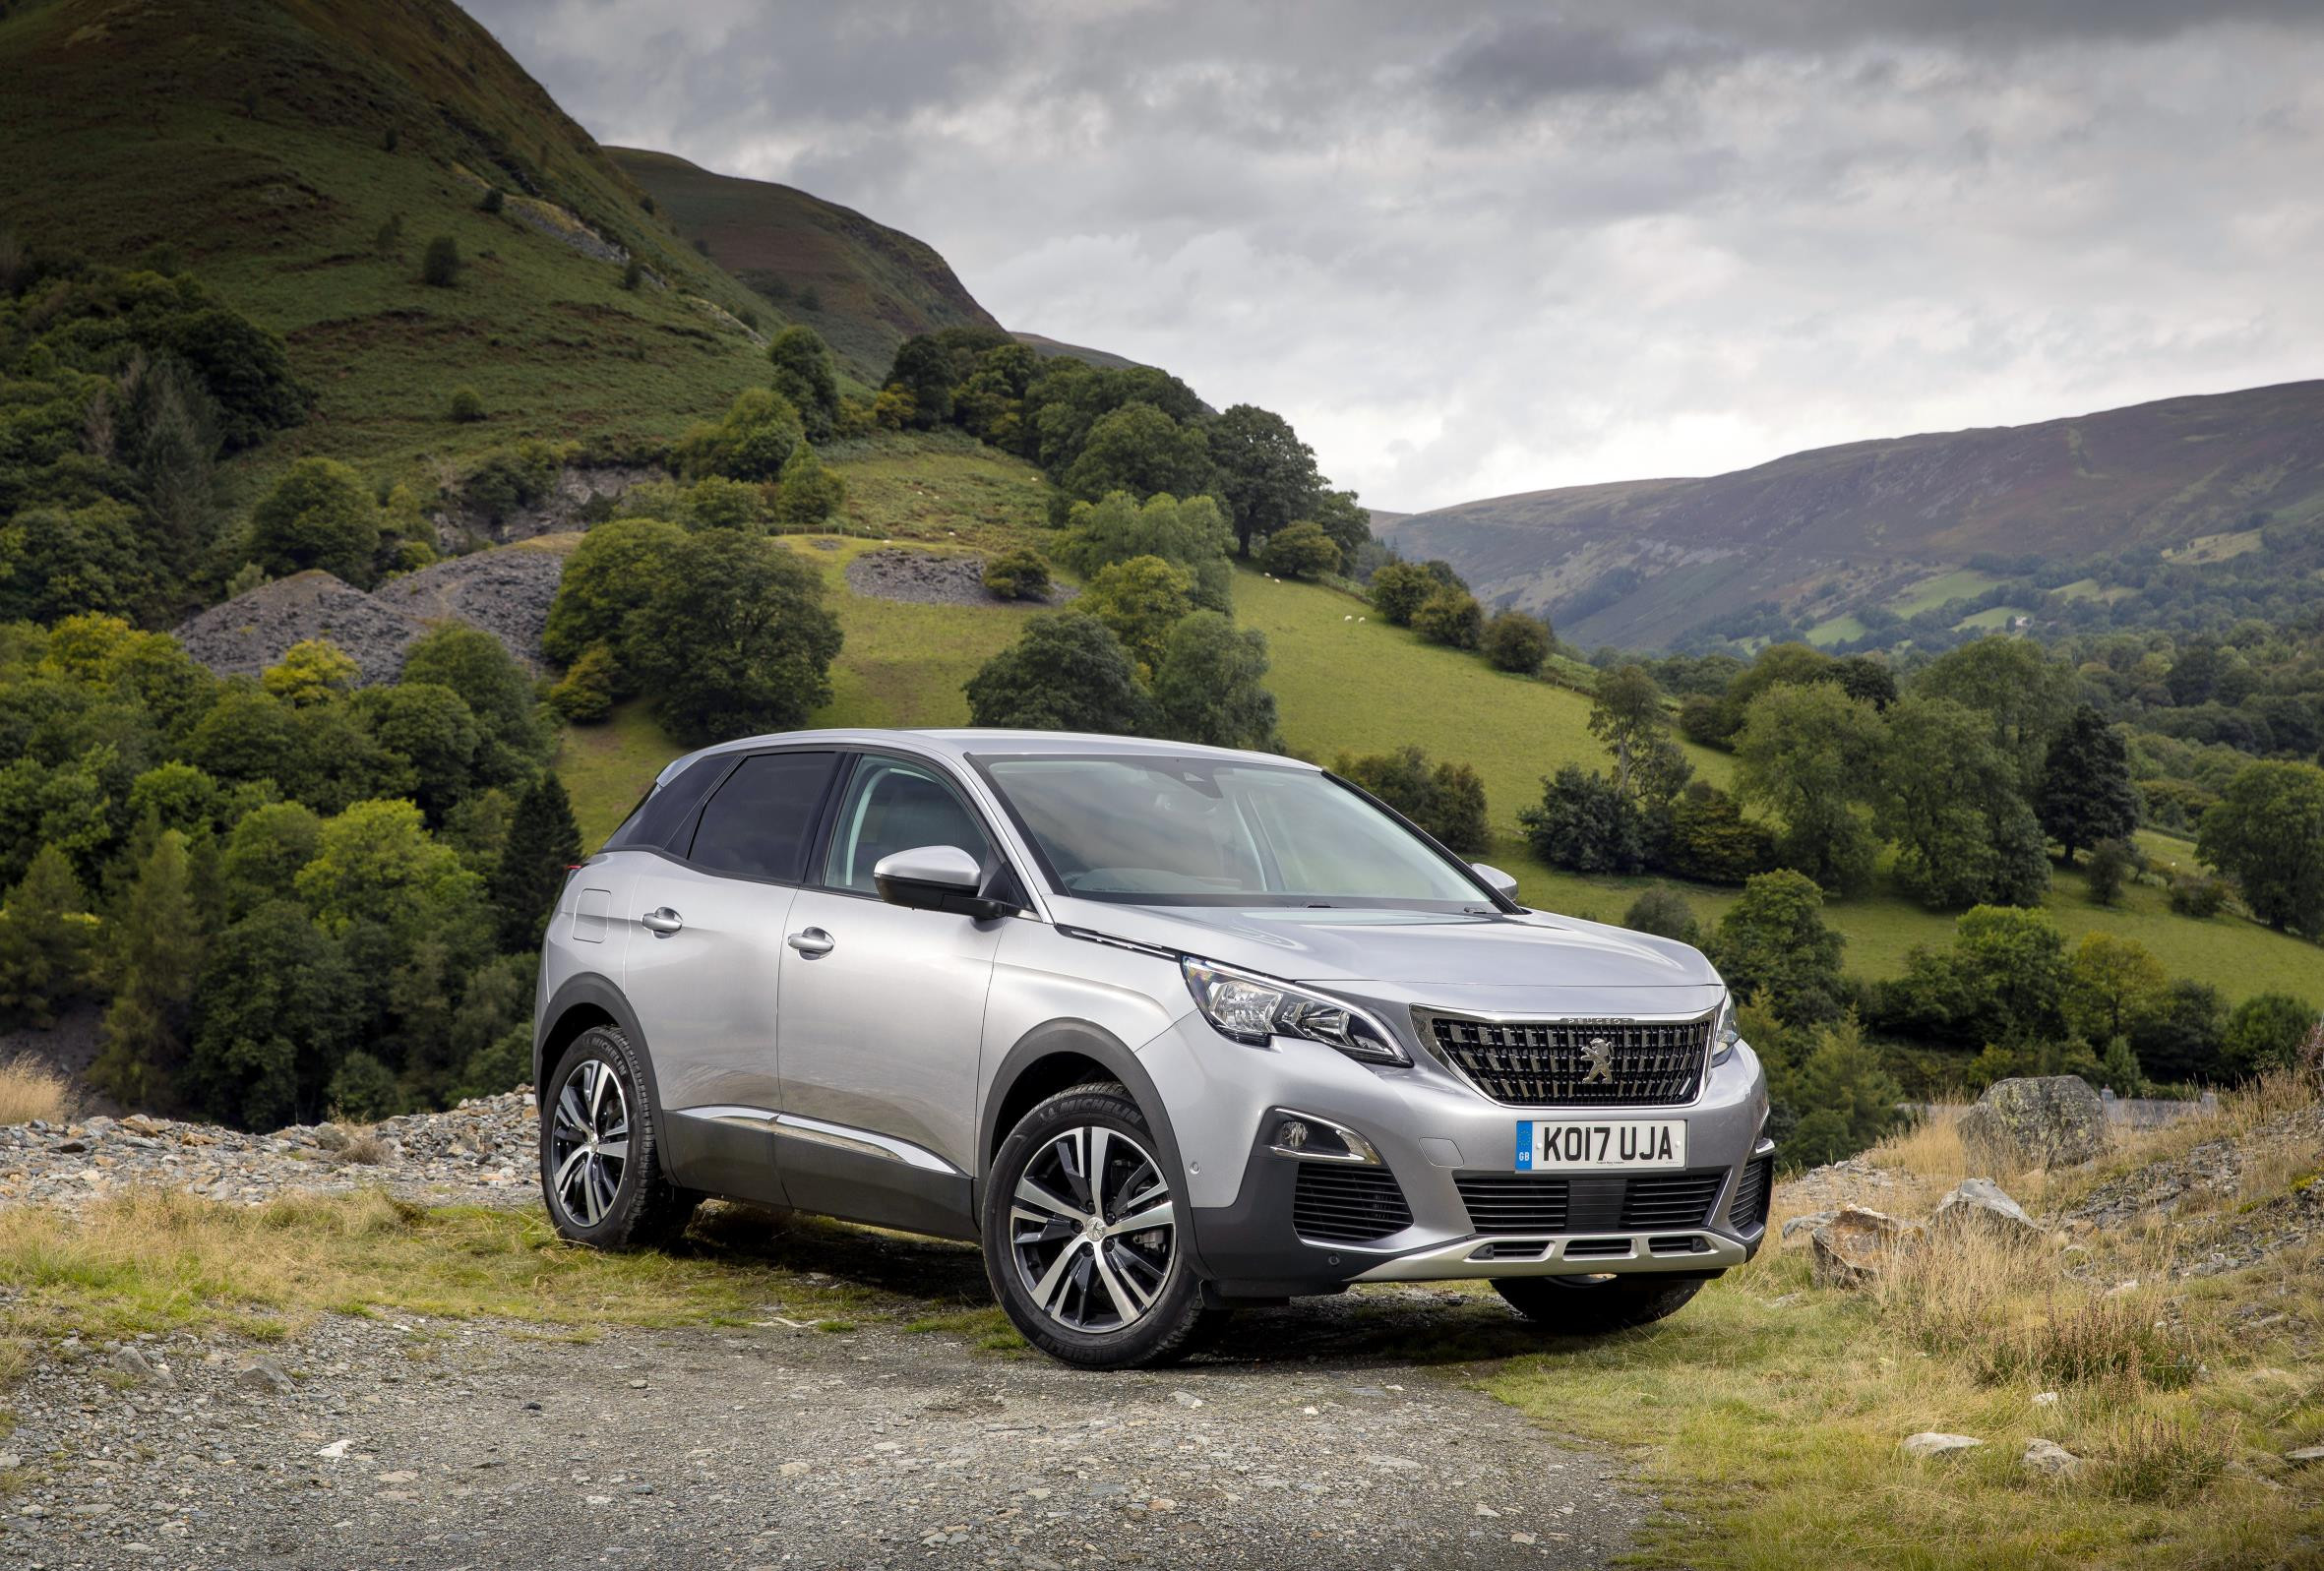 SIlver Peugeot 3008 SUV parked with a dramatic backdrop